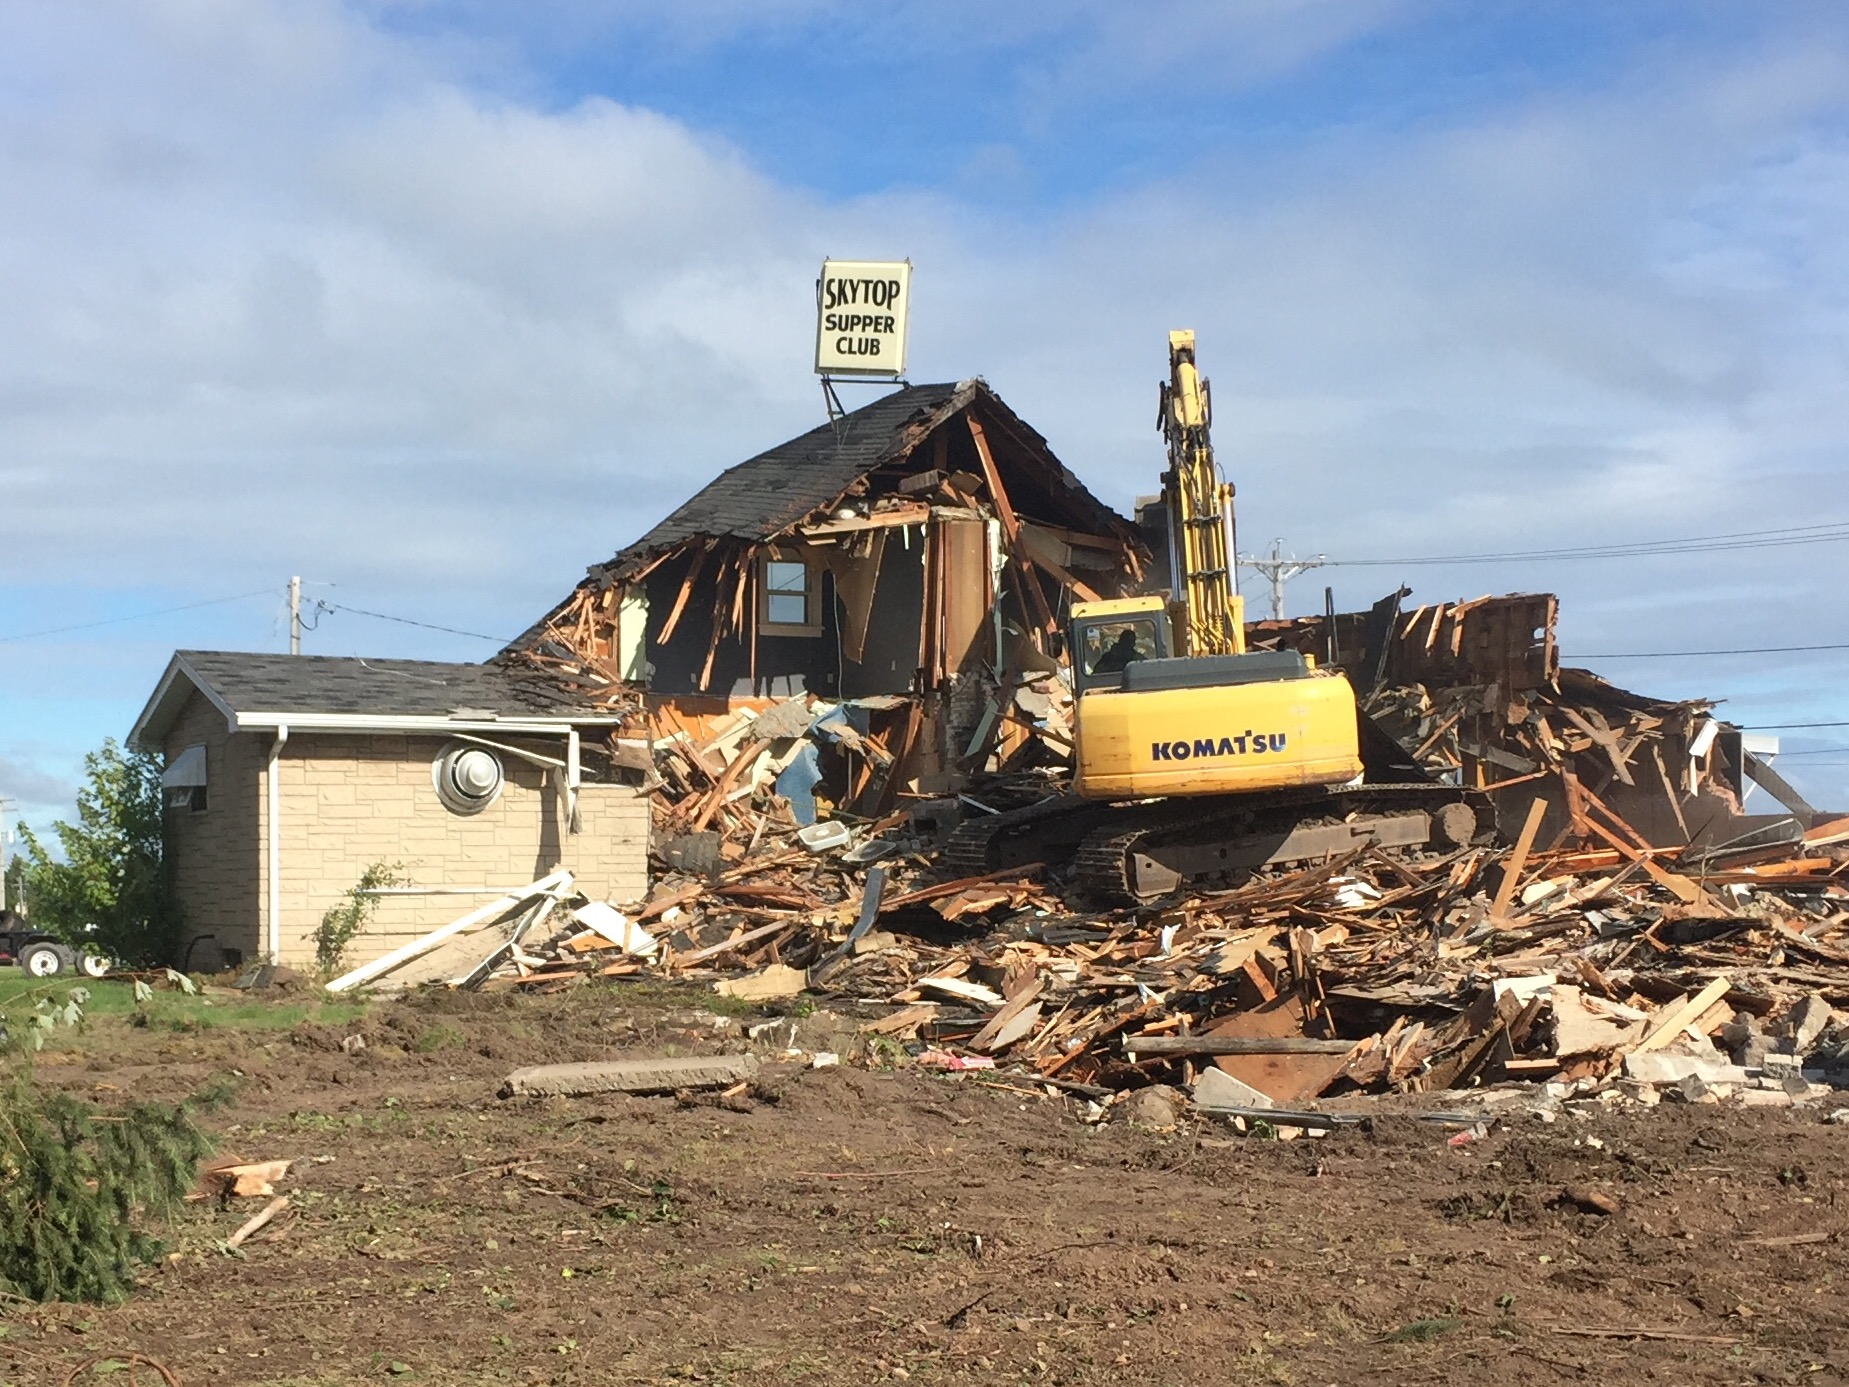 The former Sky Top Supper Club building on near the corner of Manitowoc Road and Main Street in Green Bay is demolished, September 6, 2017. (WLUK/Eric Peterson)